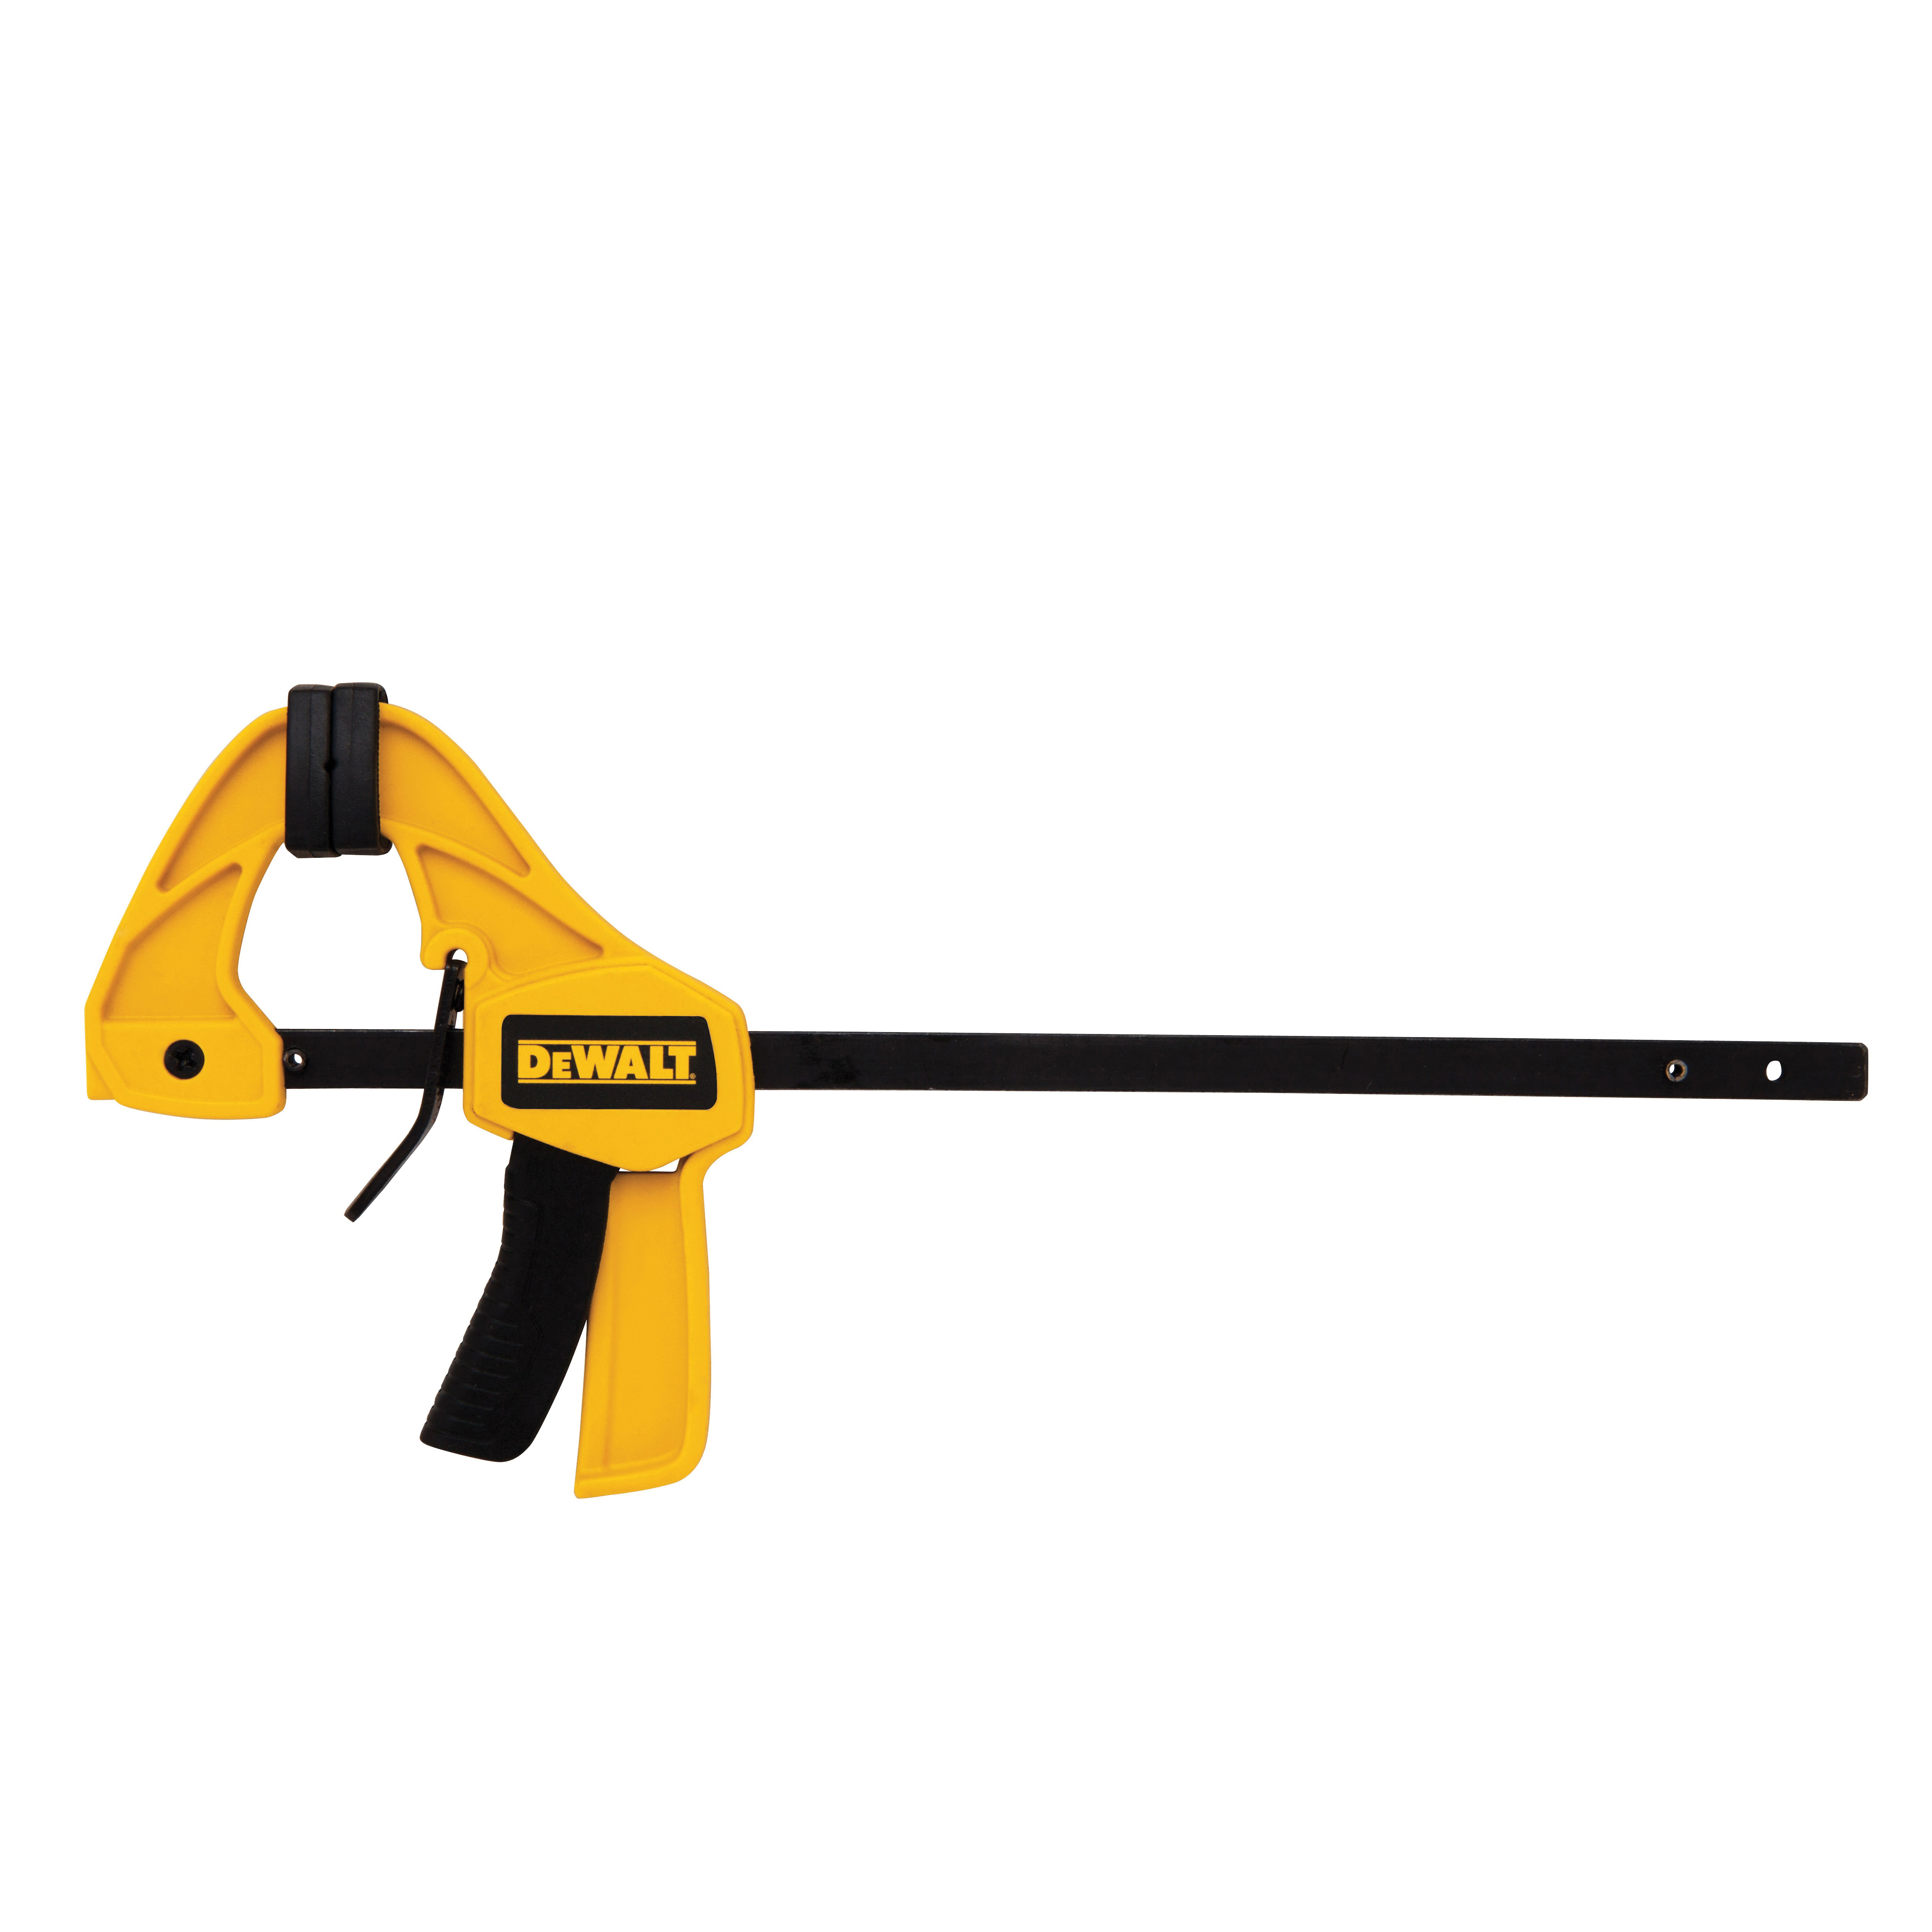 DeWALT® DWHT83148 1-Handed Small Trigger Clamp, 4-1/2 in Clamping, 1-1/2 in D Throat, Steel Bar